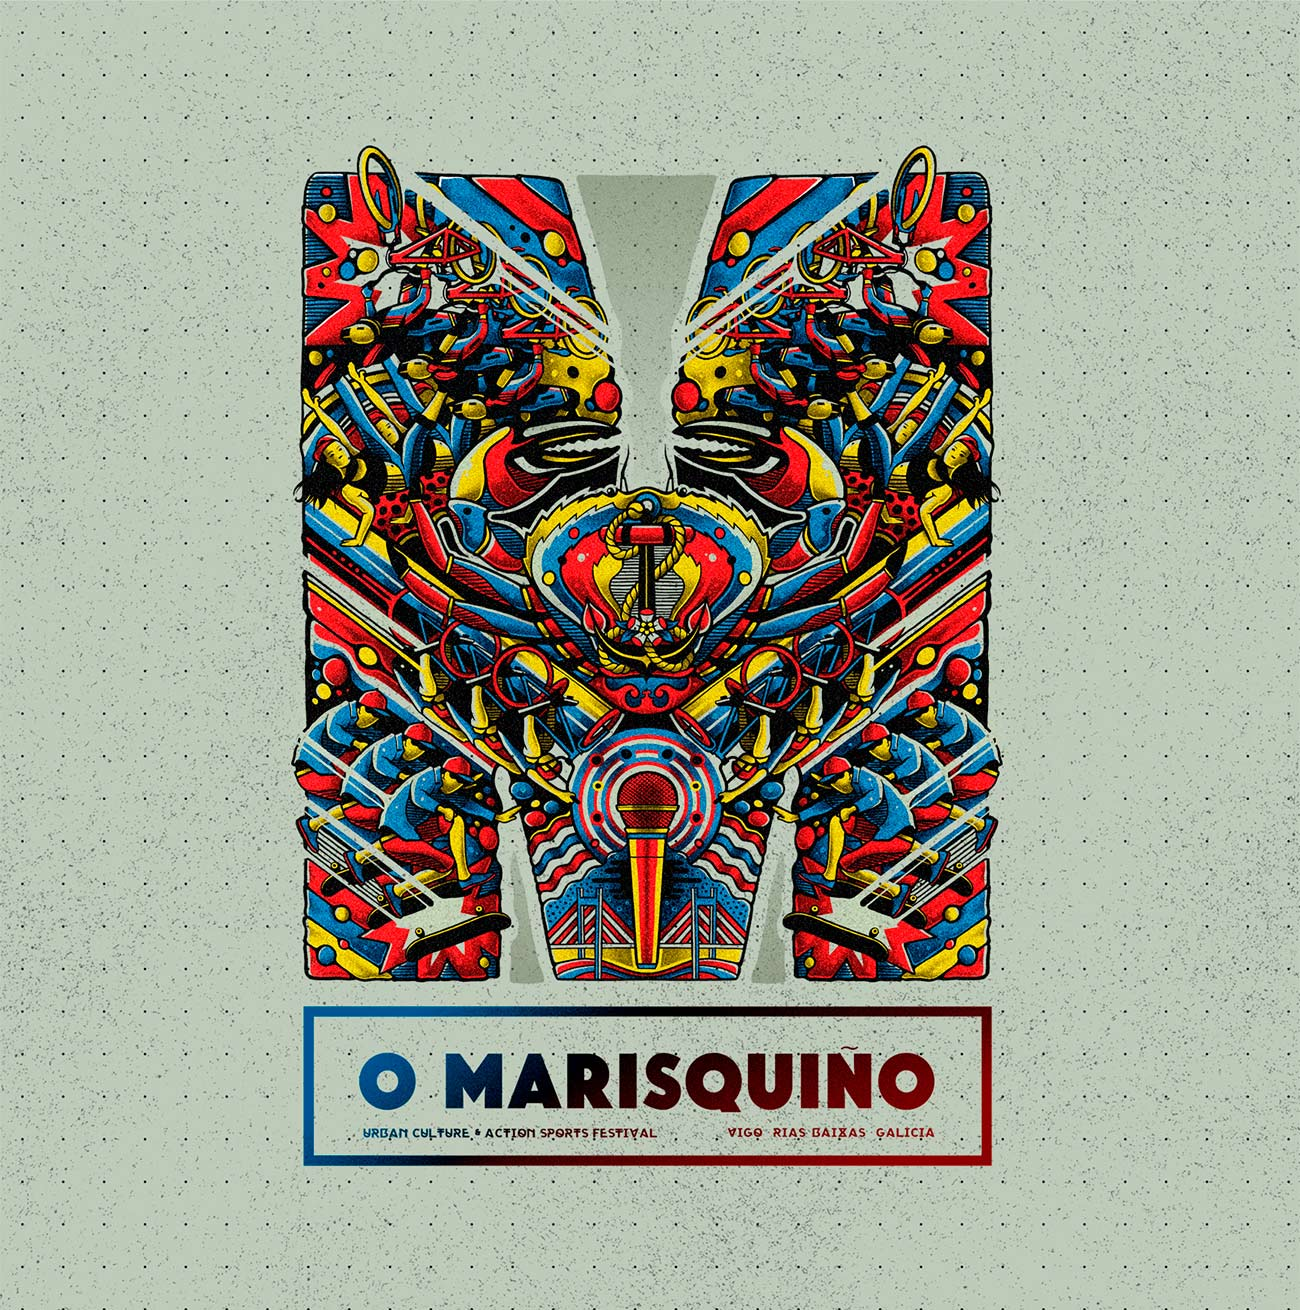 Illustration O Marisquiño skate event by Sr.Reny